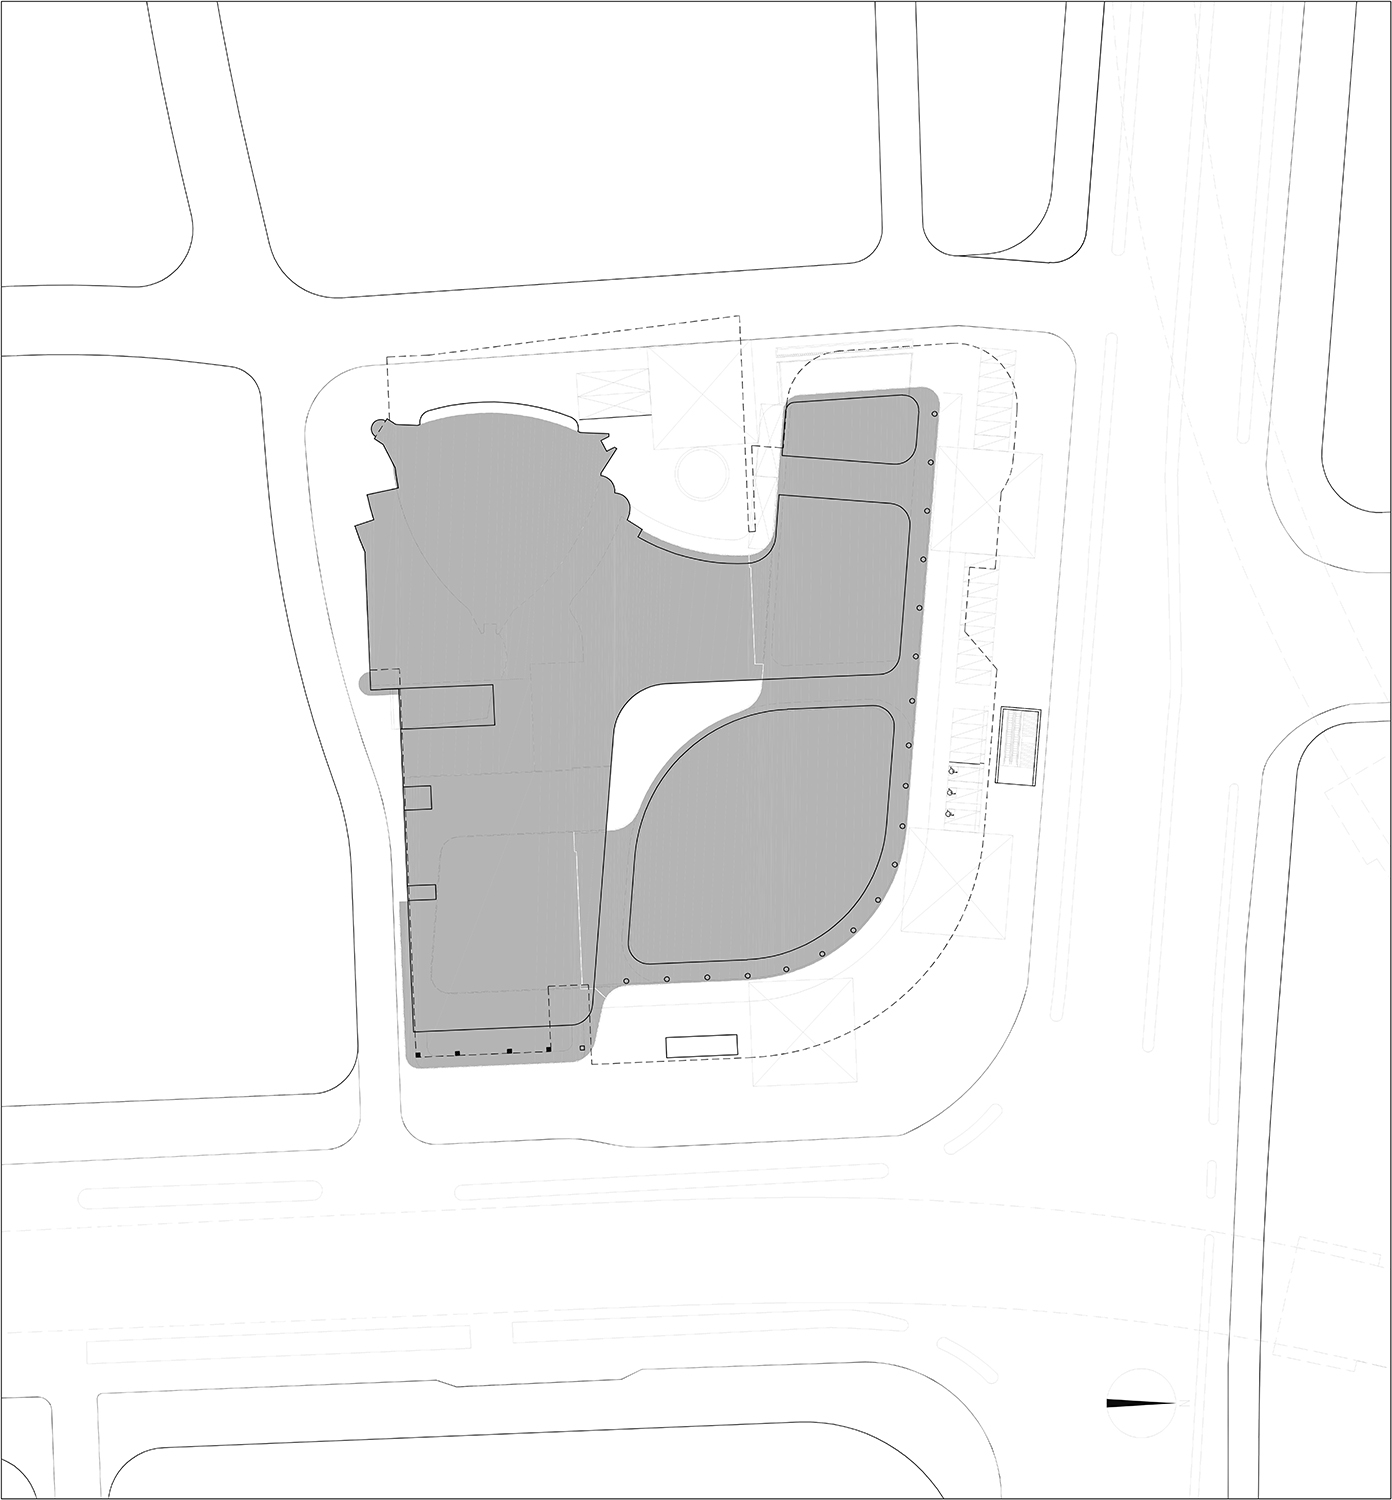 Line of Site Plan The Architectural Design & Research Institute of Zhejiang University; Architects von Gerkan, Marg and Partners (gmp)}